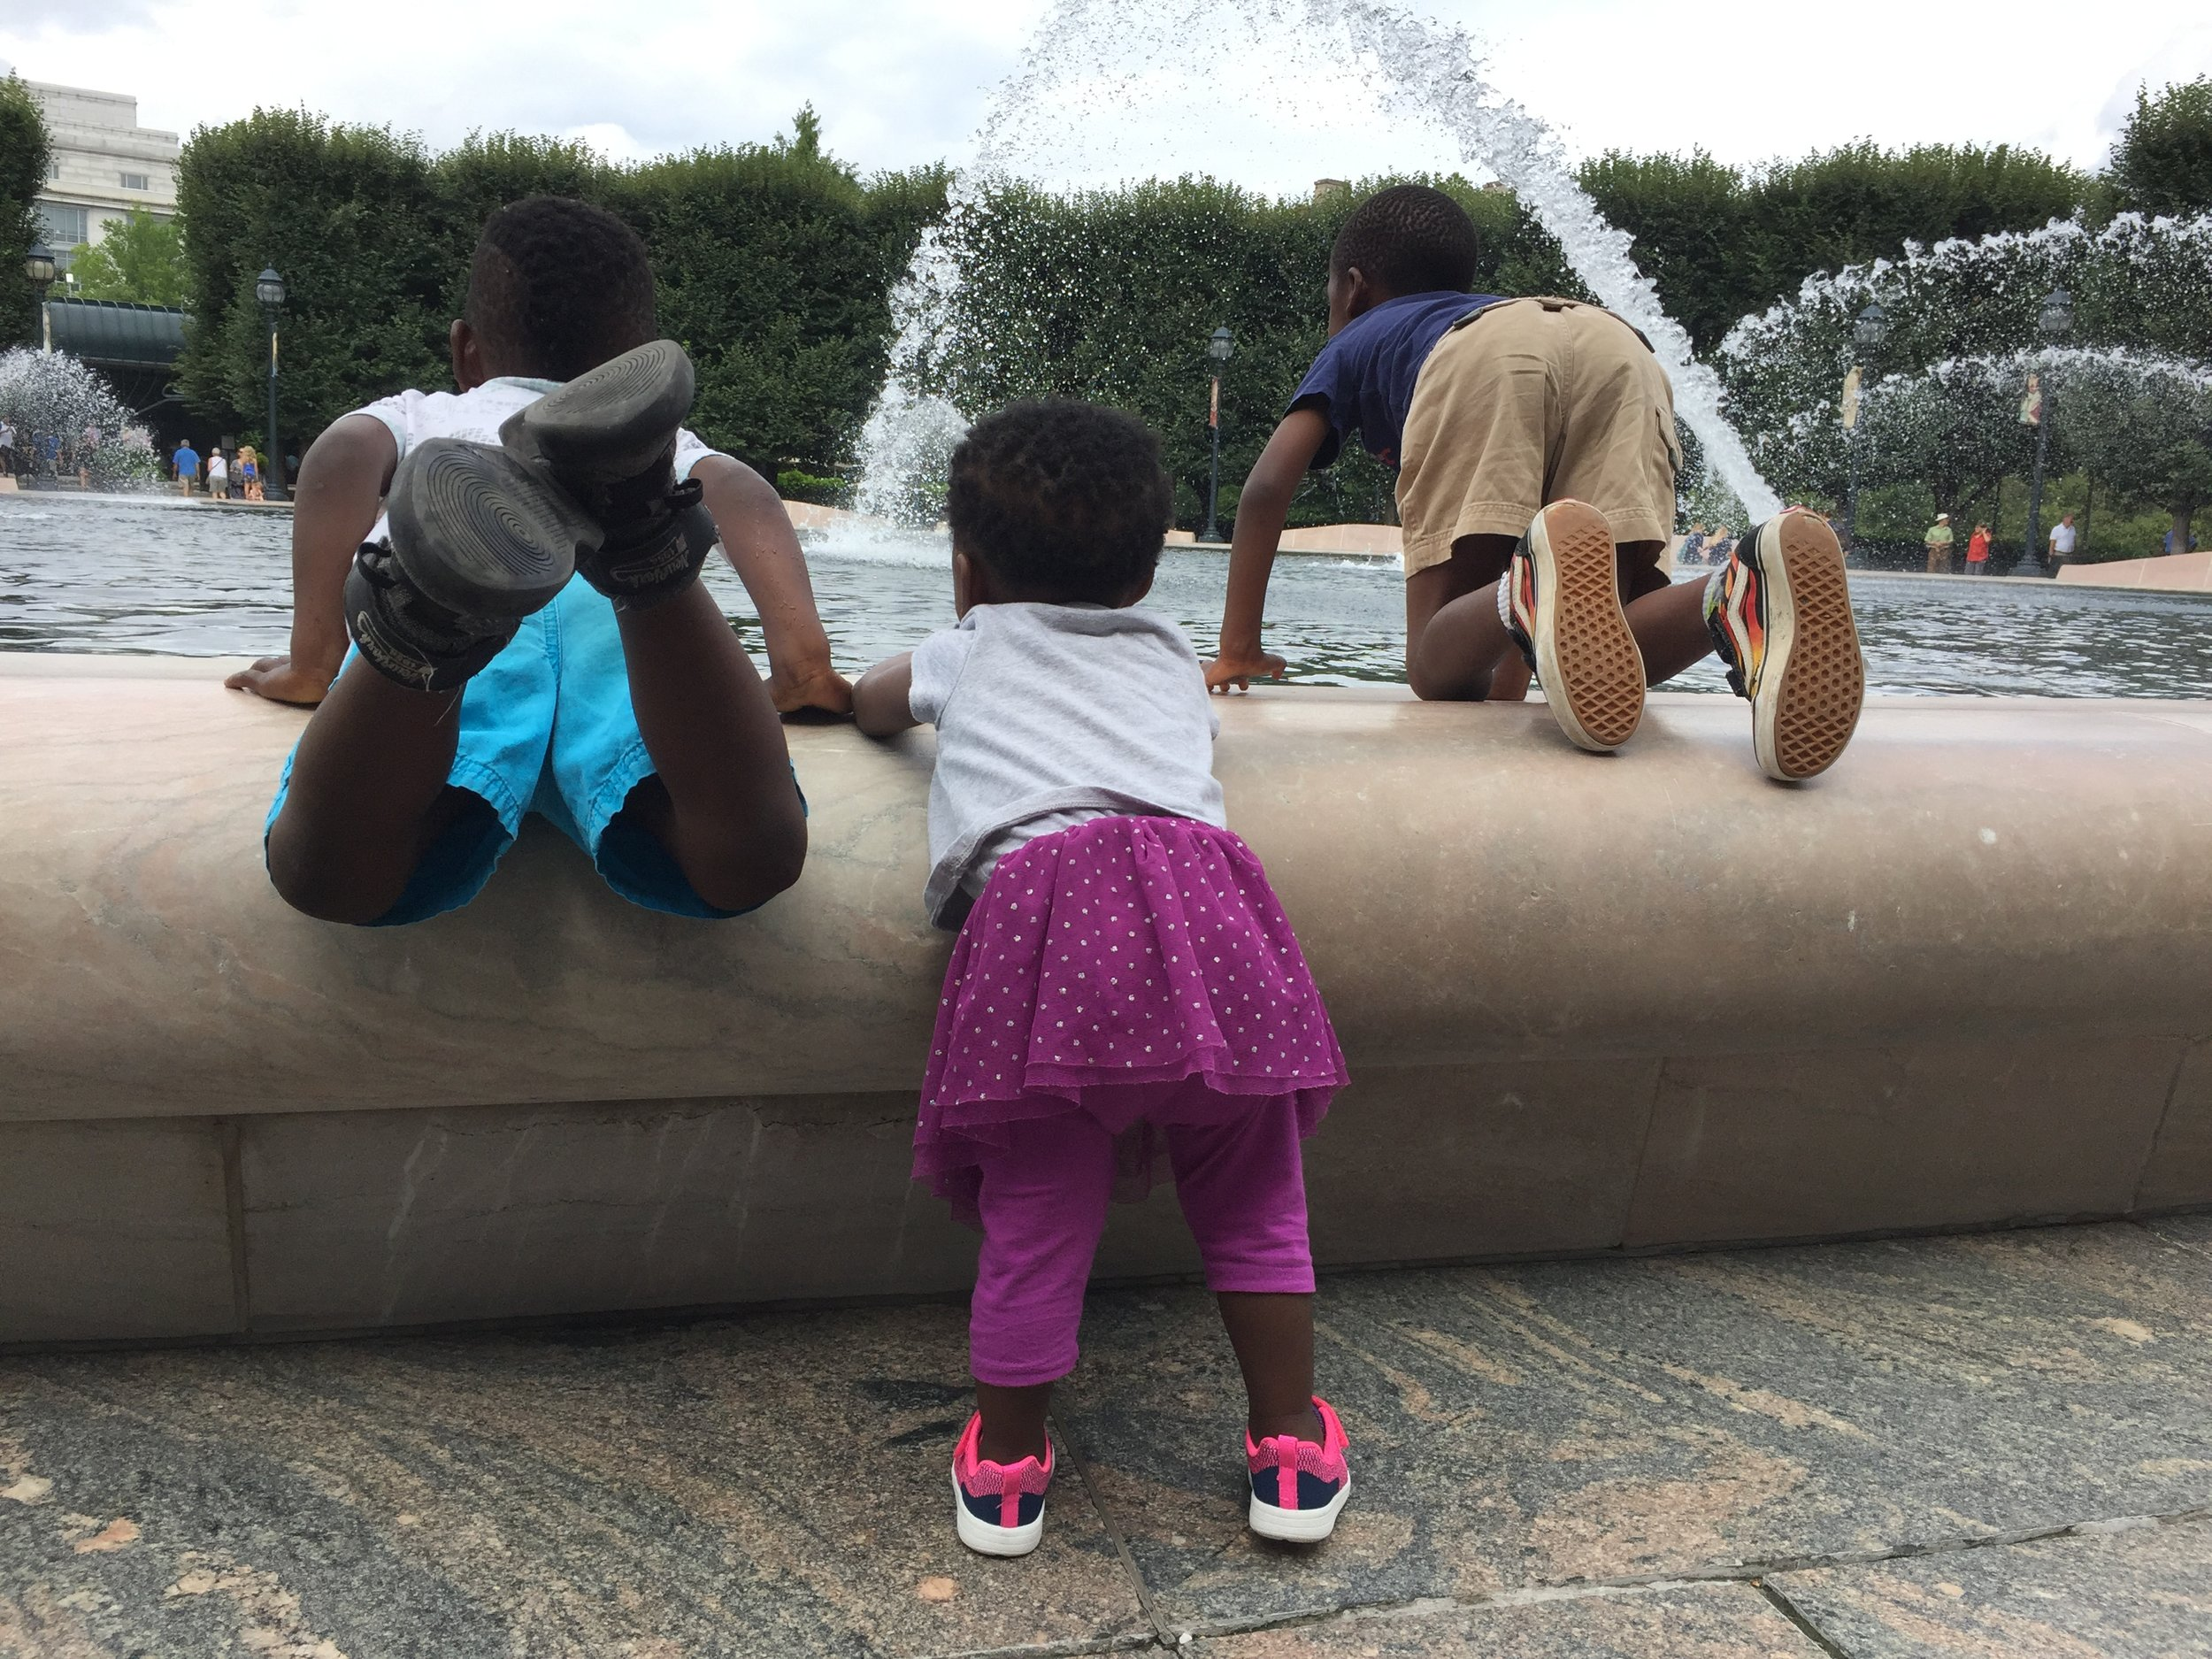 The munchkins at the National Gallery of Art Sculpture Garden, Washington, DC